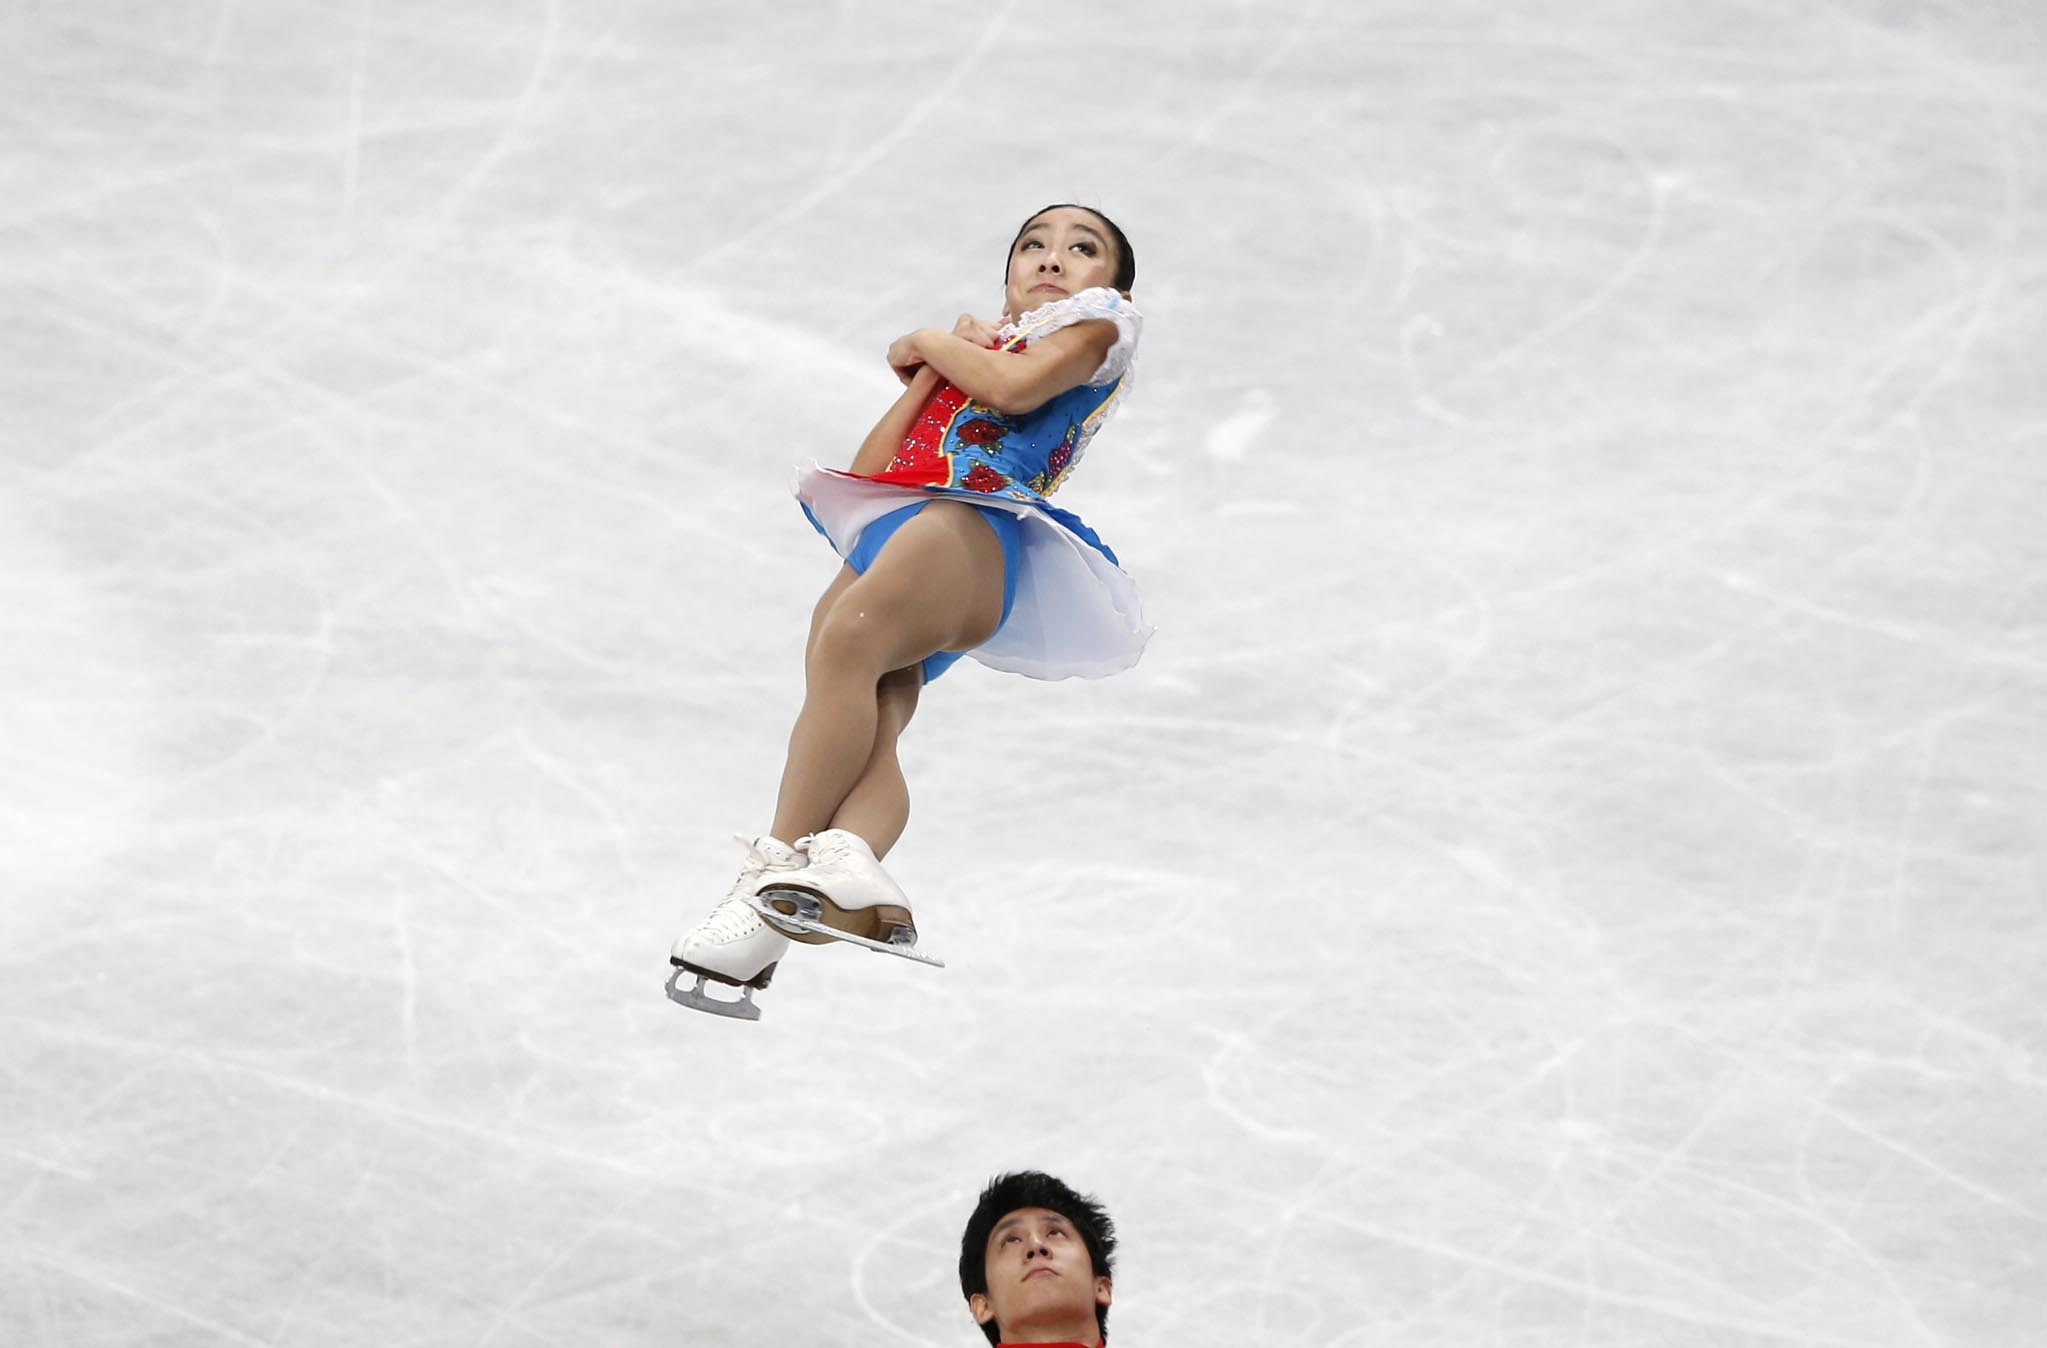 China's Sui Wenjing and Han Cong compete during the pairs free skating program at the ISU World Figure Skating Championships in Saitama